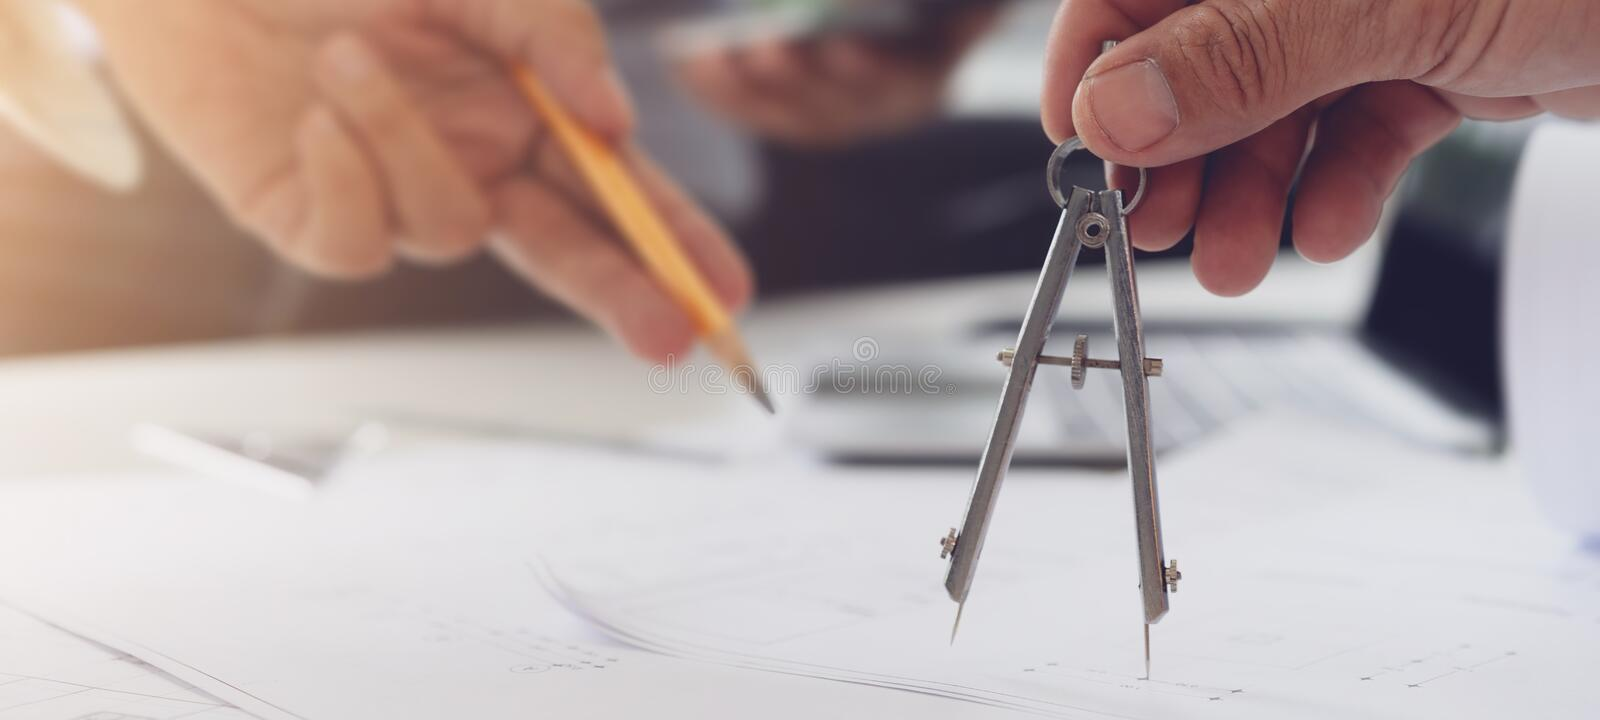 Cropped shot of architect colleagues sketching and discussing about construction plans on blueprint at construction site office royalty free stock images